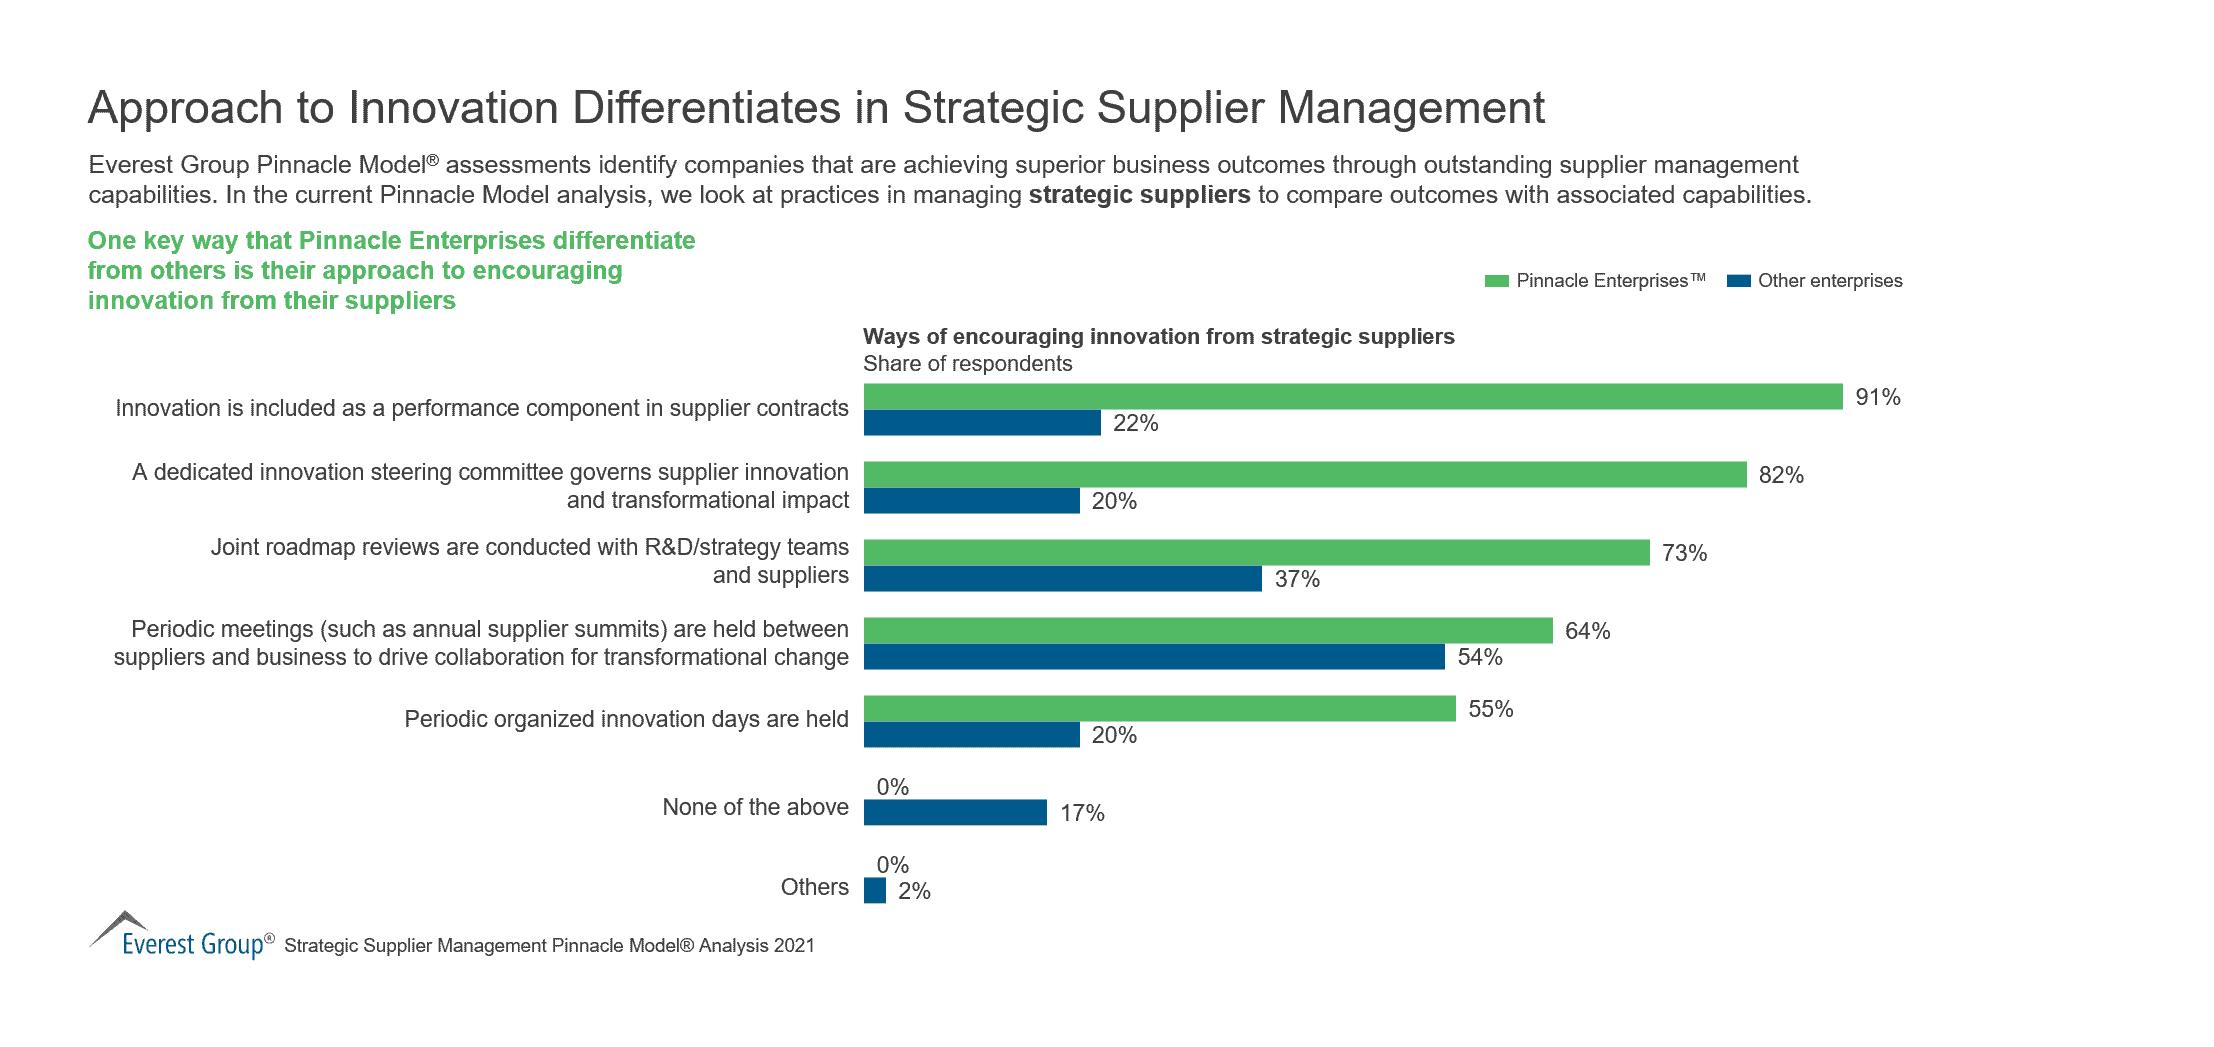 Approach to Innovation Differentiates in Strategic Supplier Management